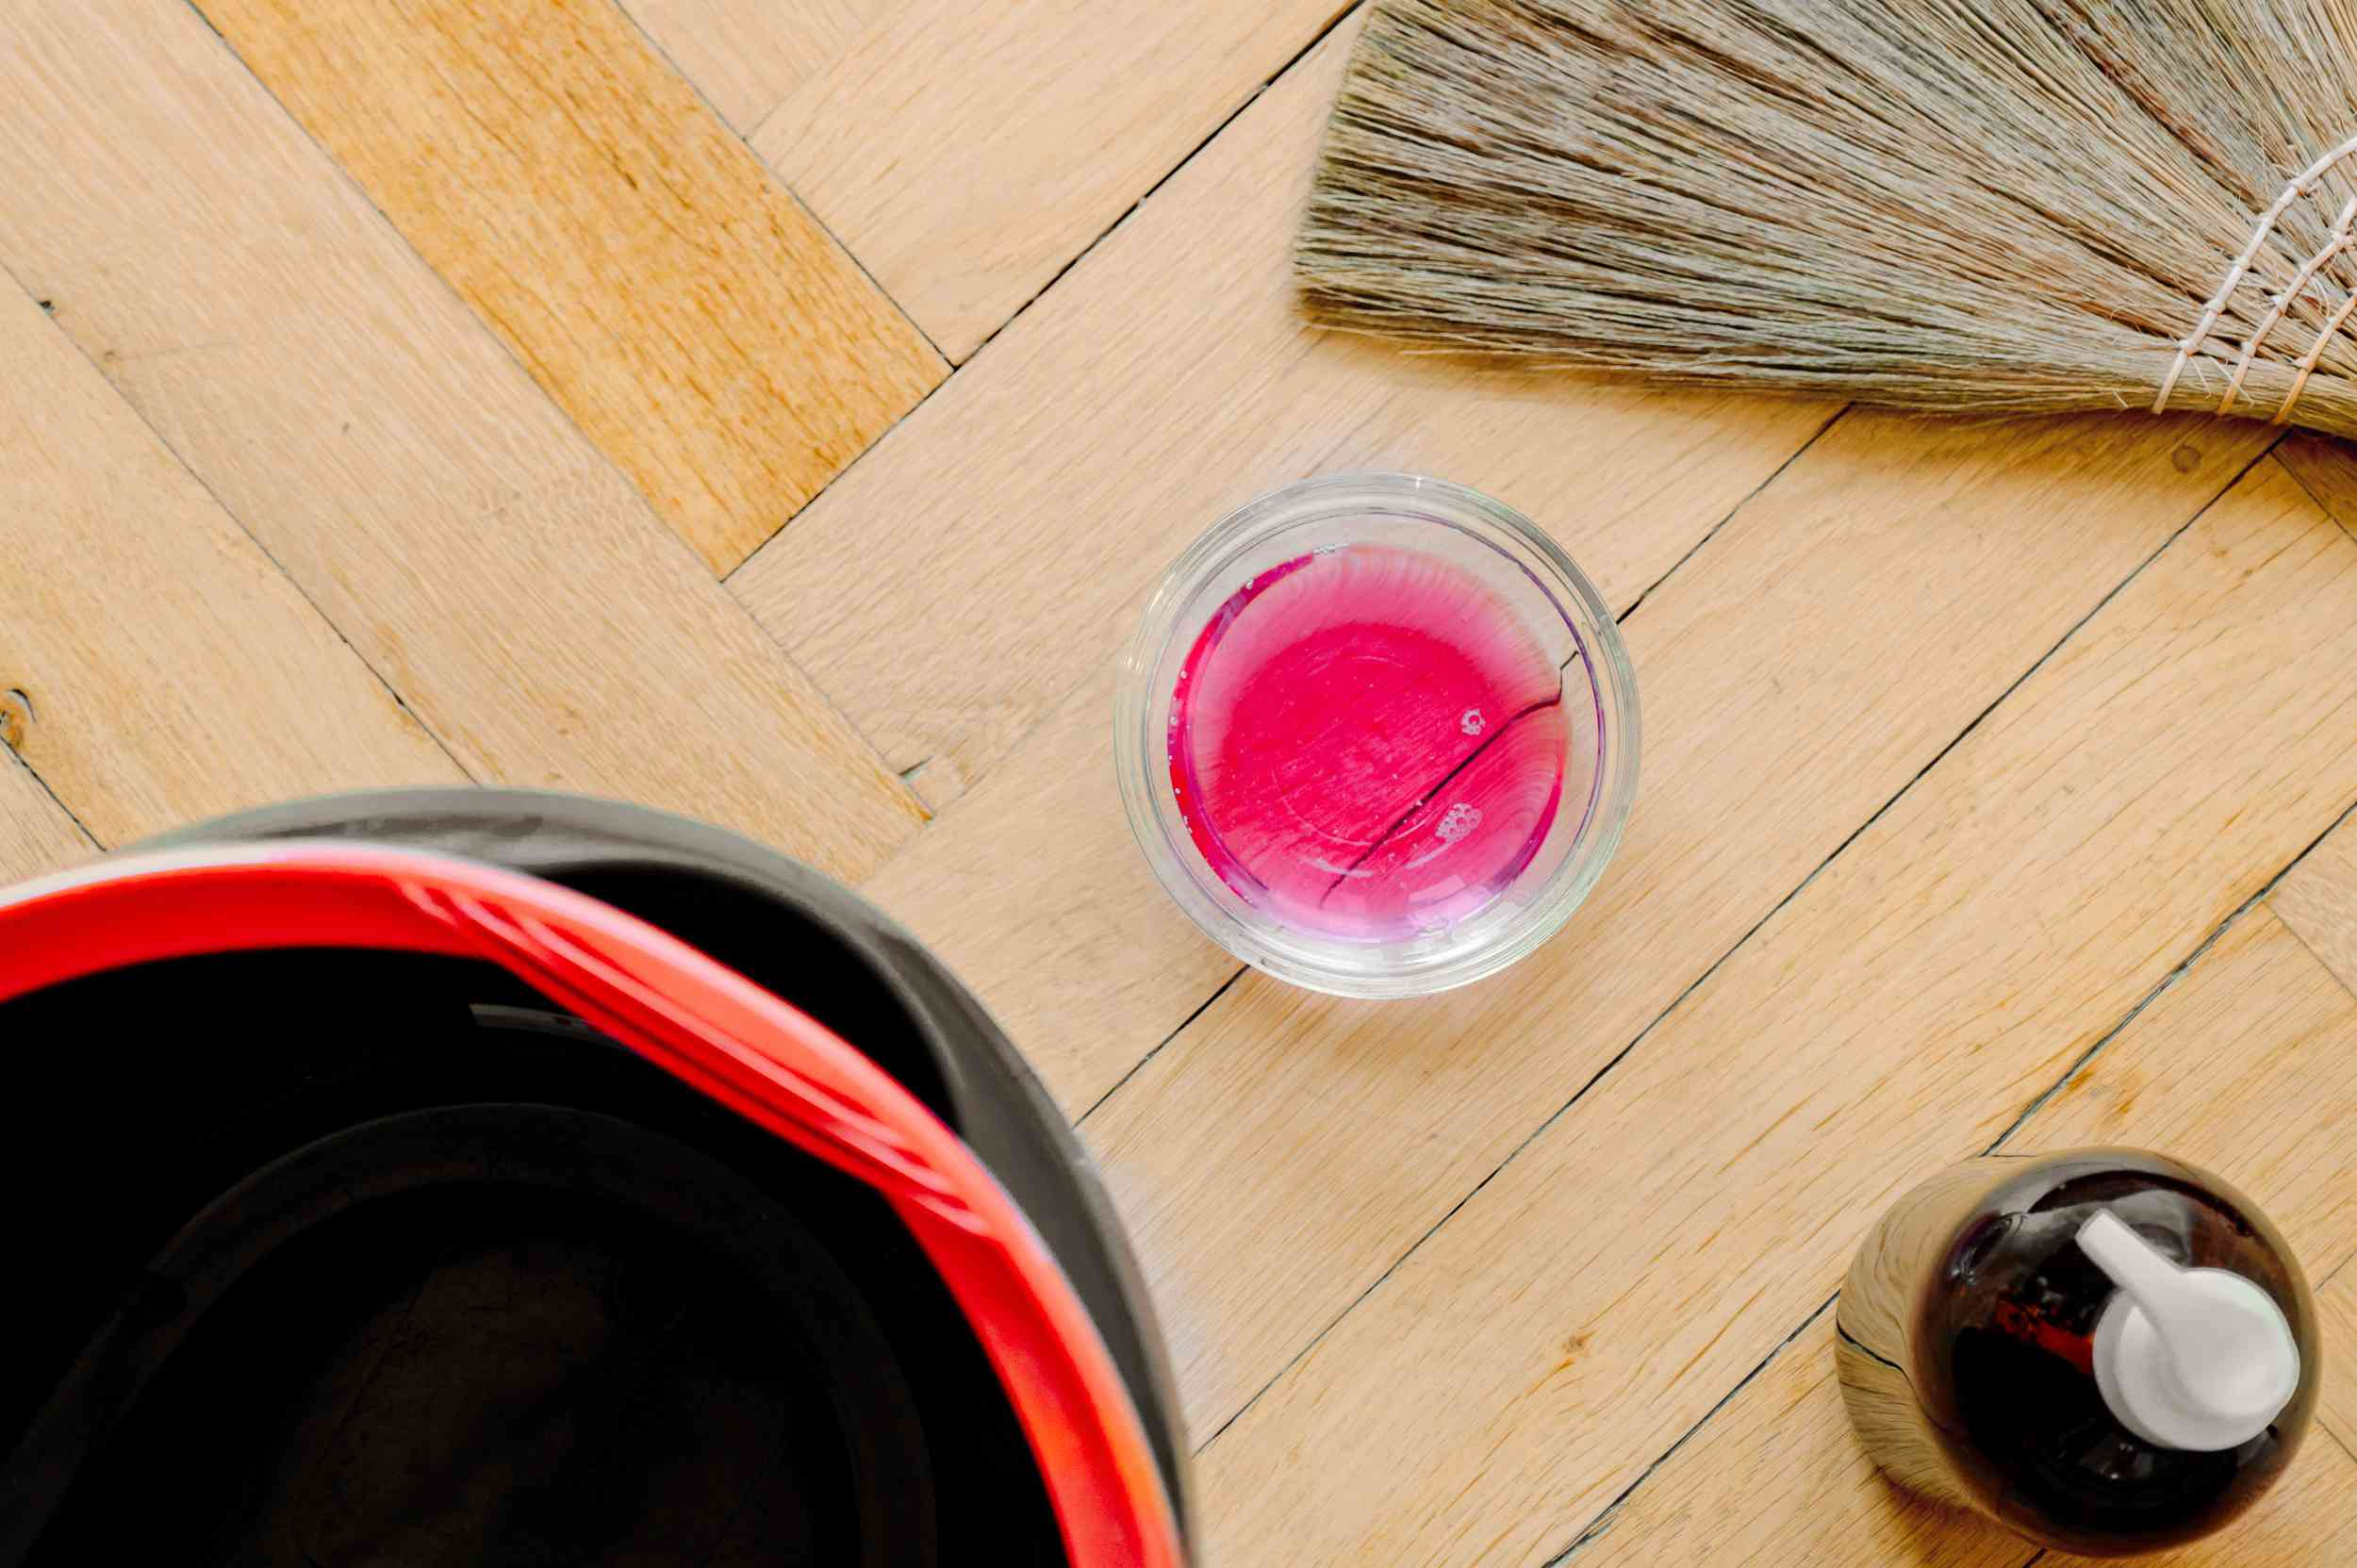 Materials and tools to clean a broom